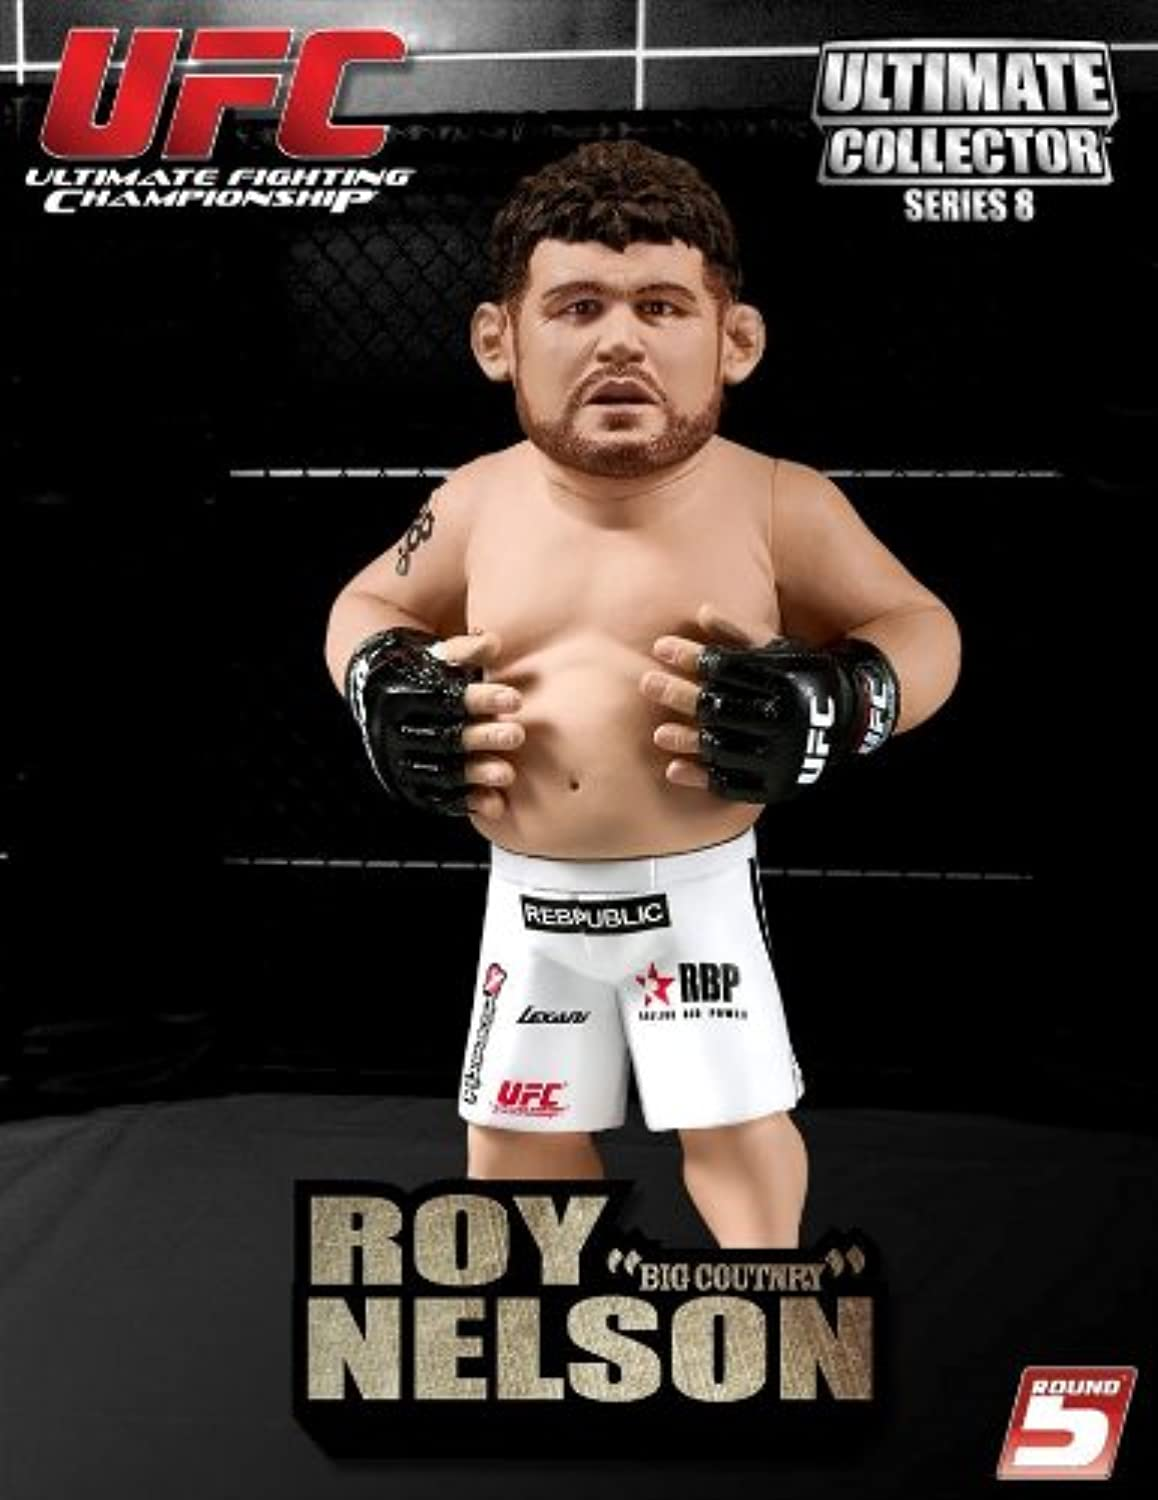 UFC Ultimate Collector Series 8 Roy  Big Country  Nelson